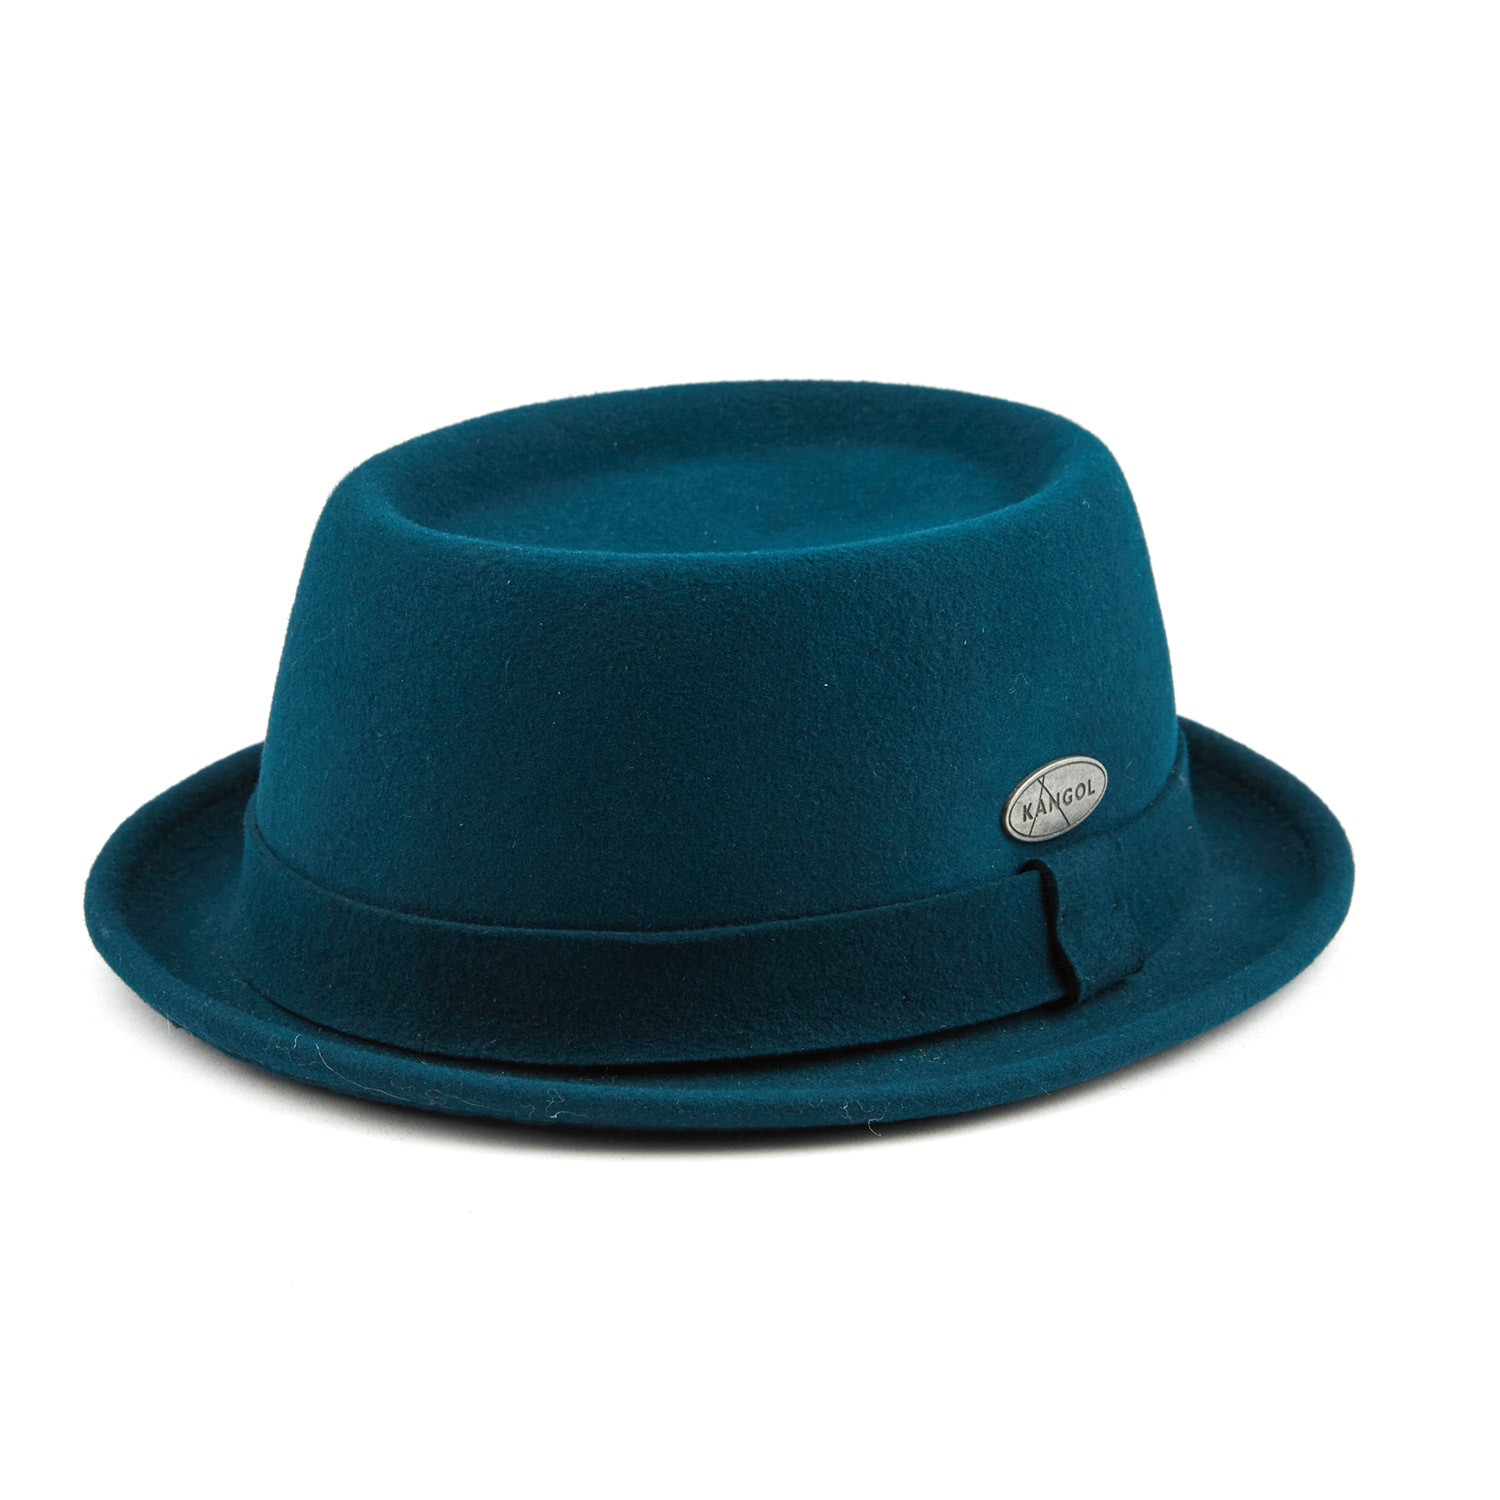 Litefelt Pork Pie Hat    Dark Cyan (S) - Kangol - Touch of Modern 159c69f8ad7d